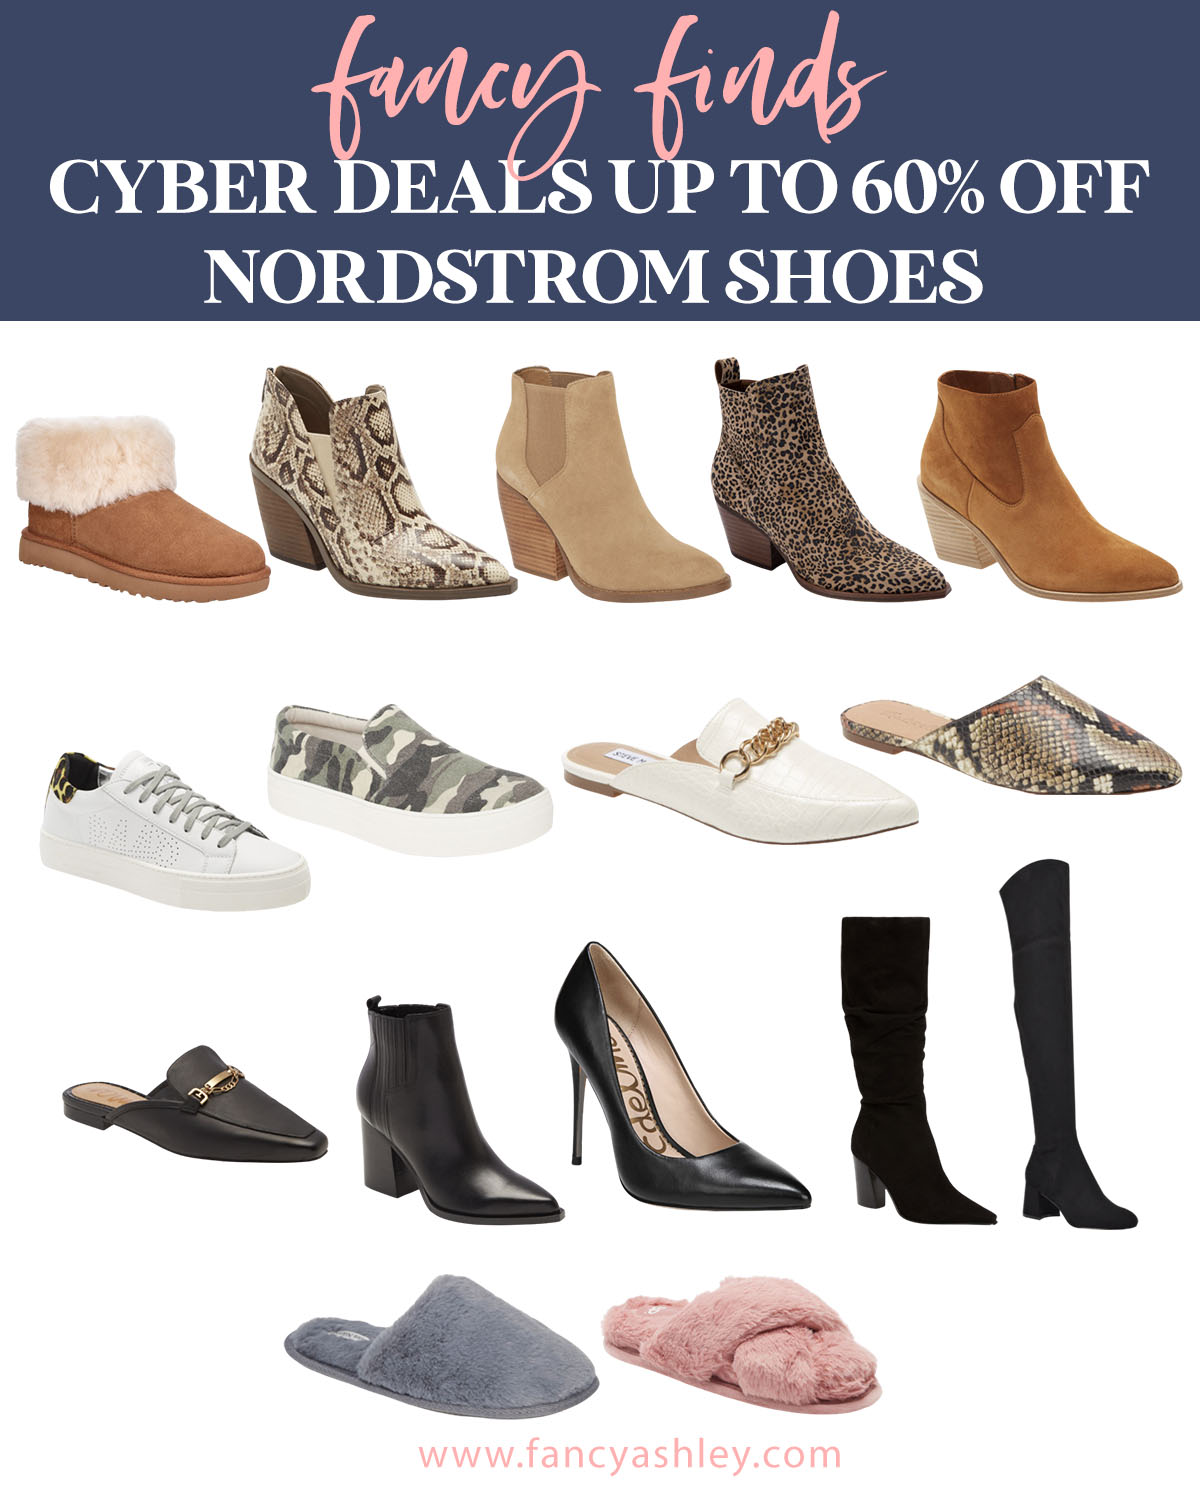 Black Friday Sales by popular Houston life and style blog, Fancy Ashley: collage image of Nordstrom ankle boots, sneakers, knee high boots, mules and slippers.